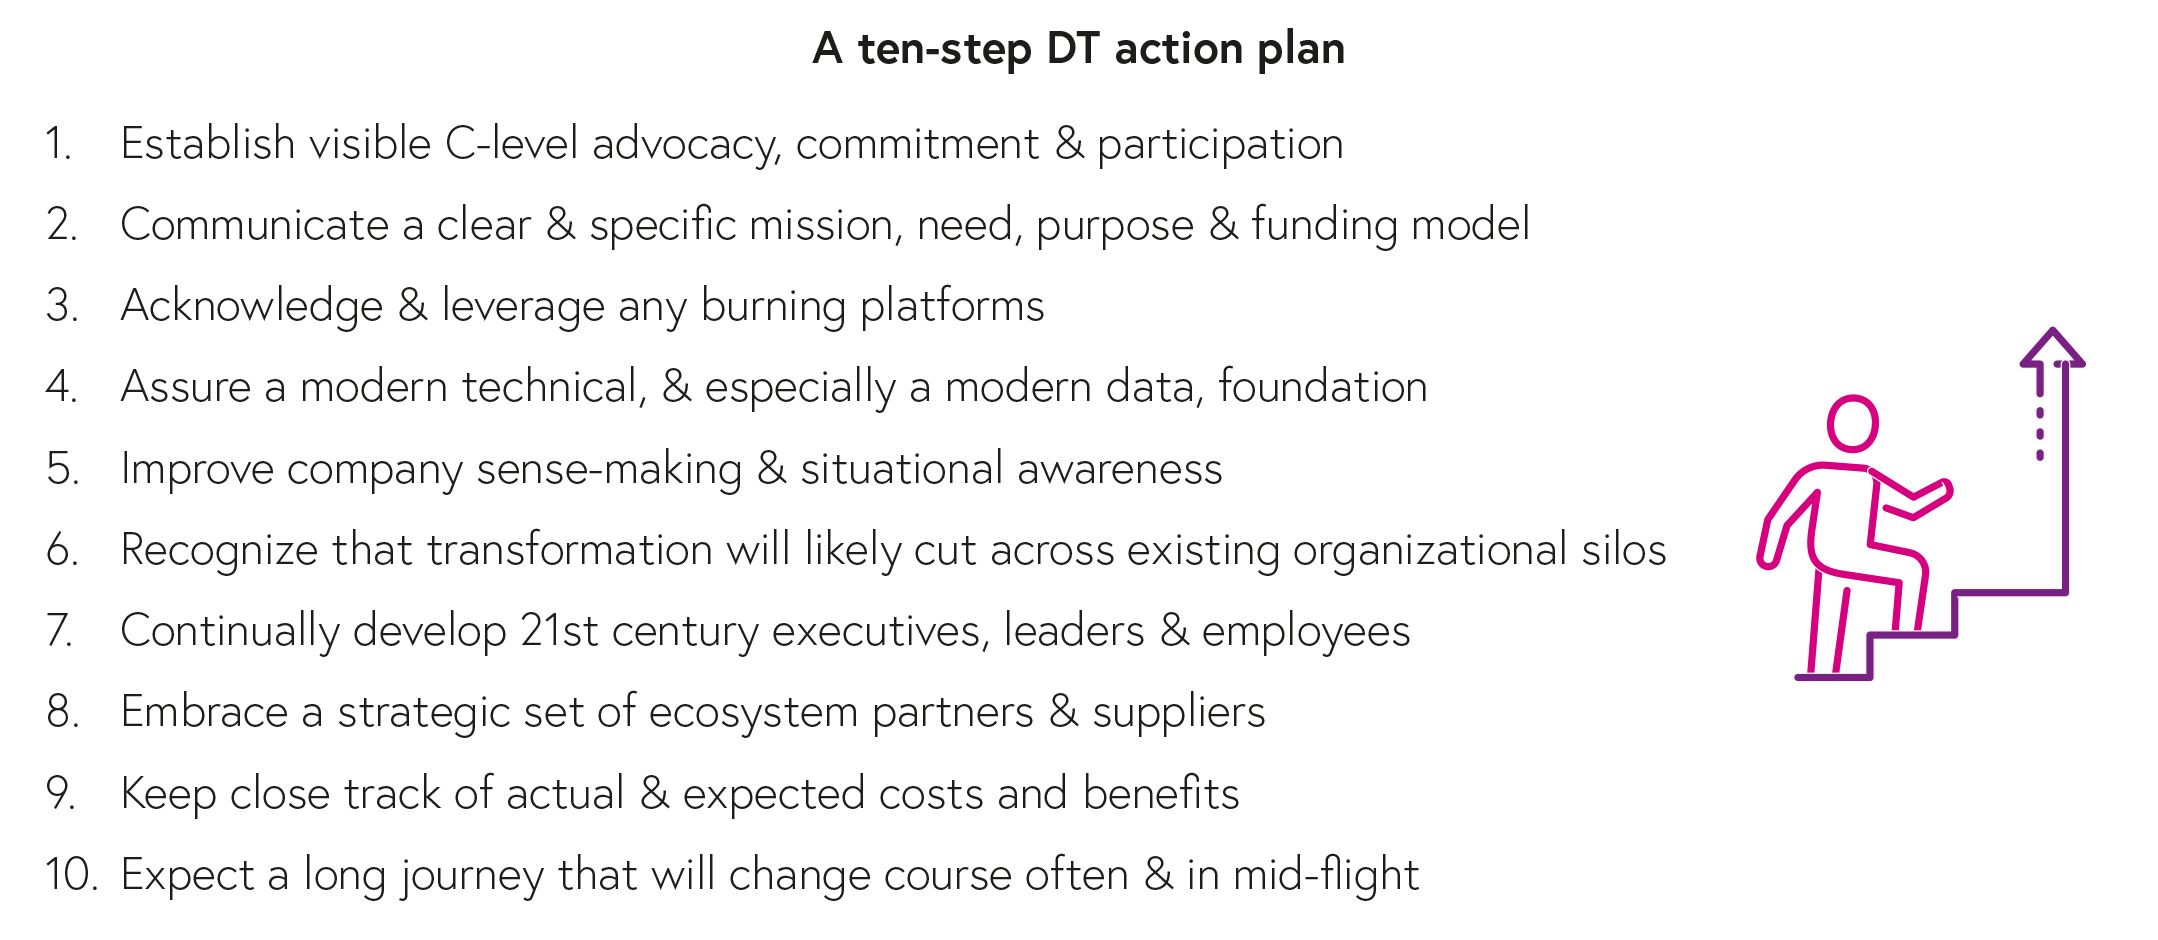 An action plan for digital transformation